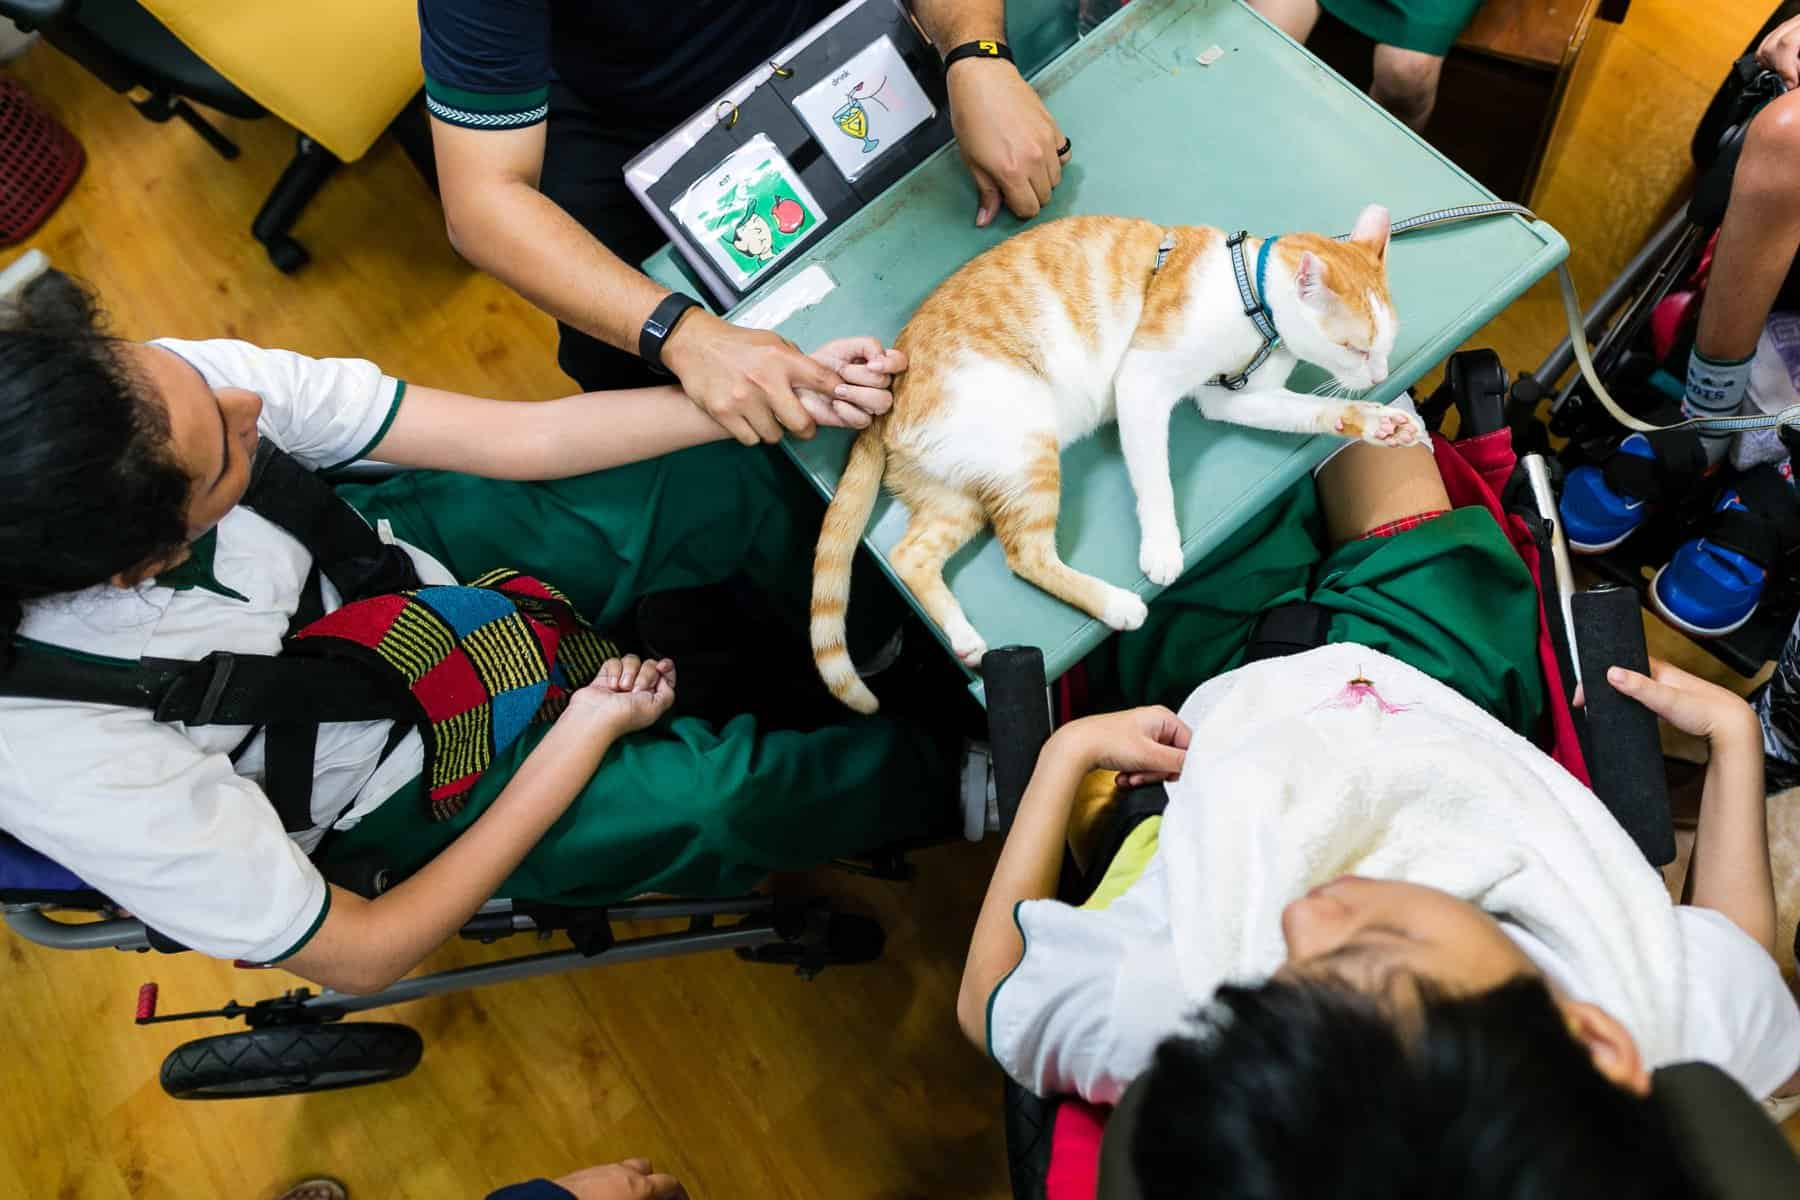 Students interacting with a rescue cat in school